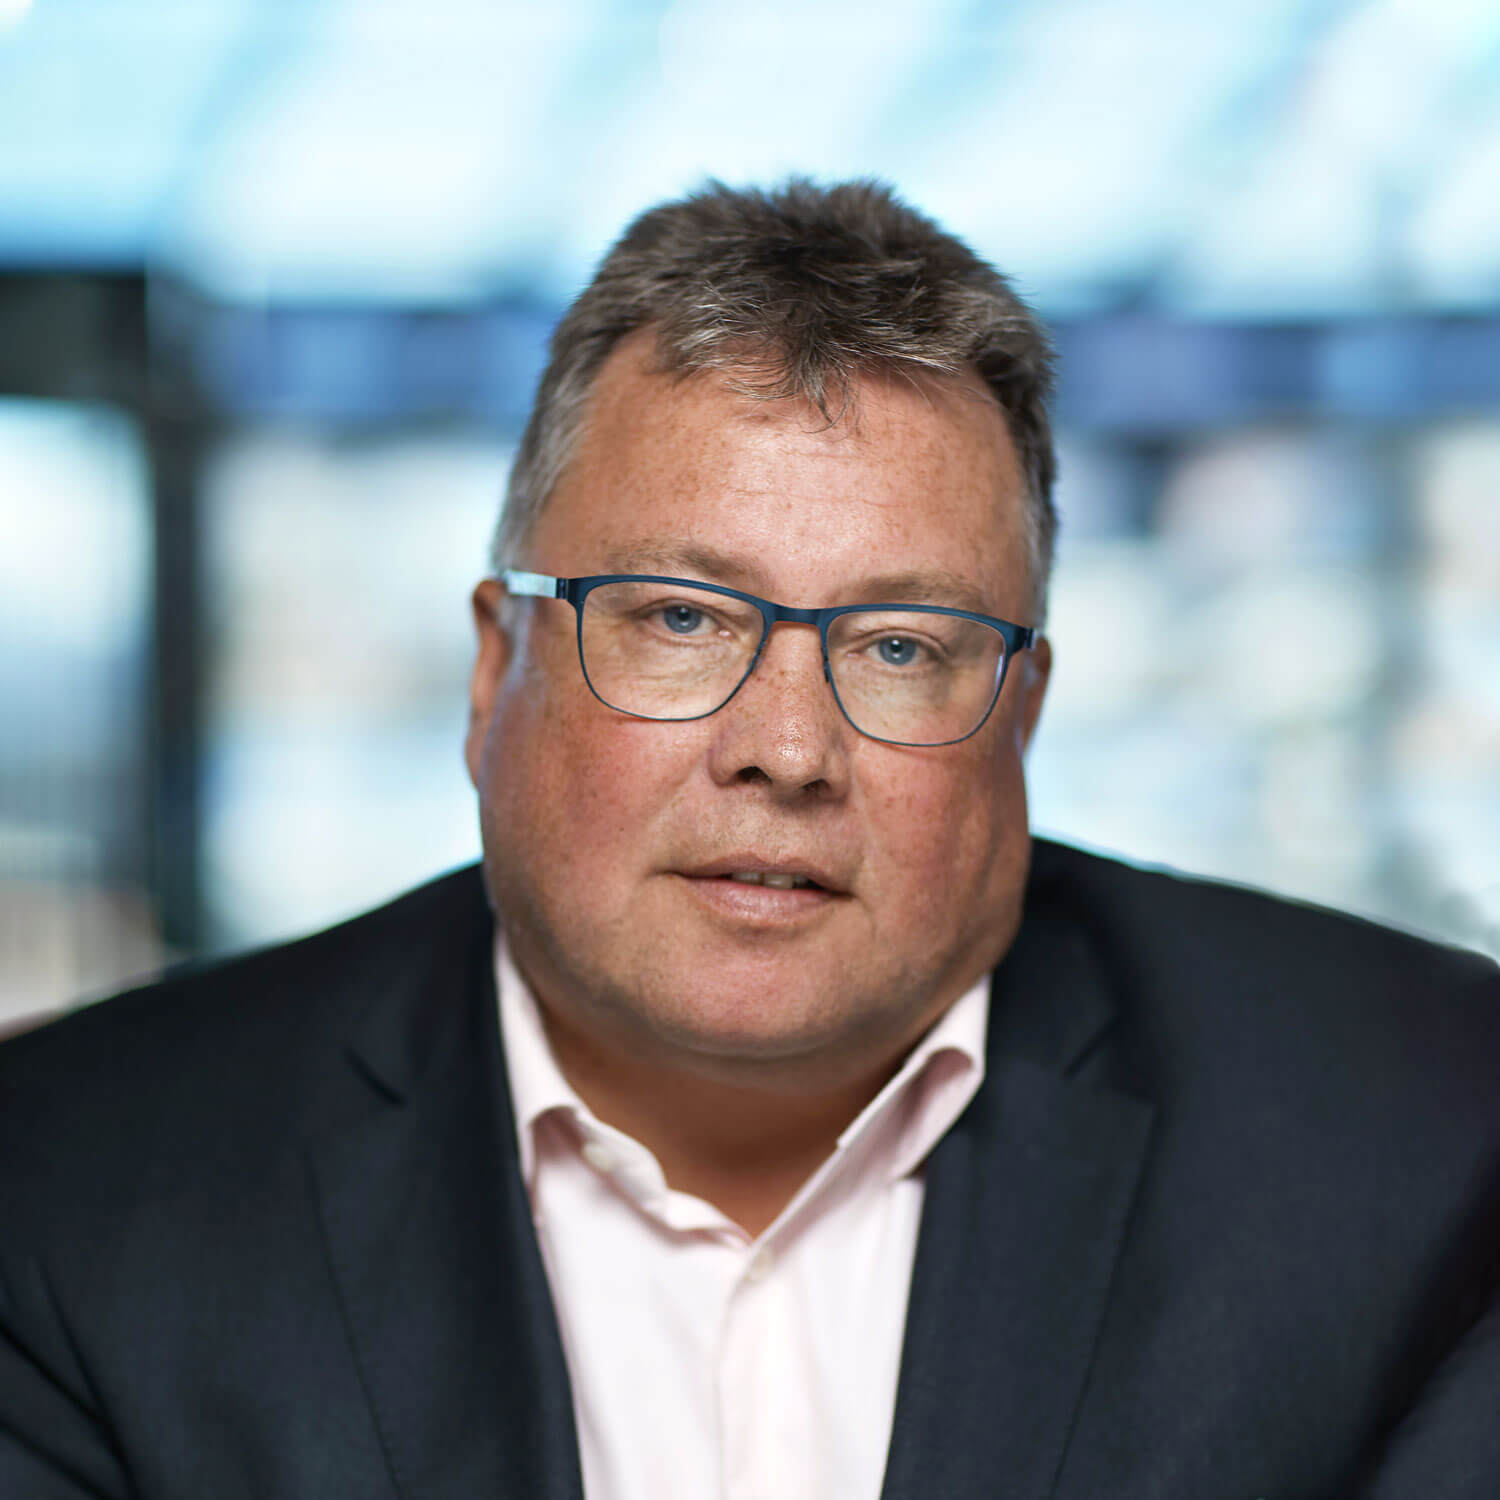 Harald Goetsch, Executive Vice President Central Europe